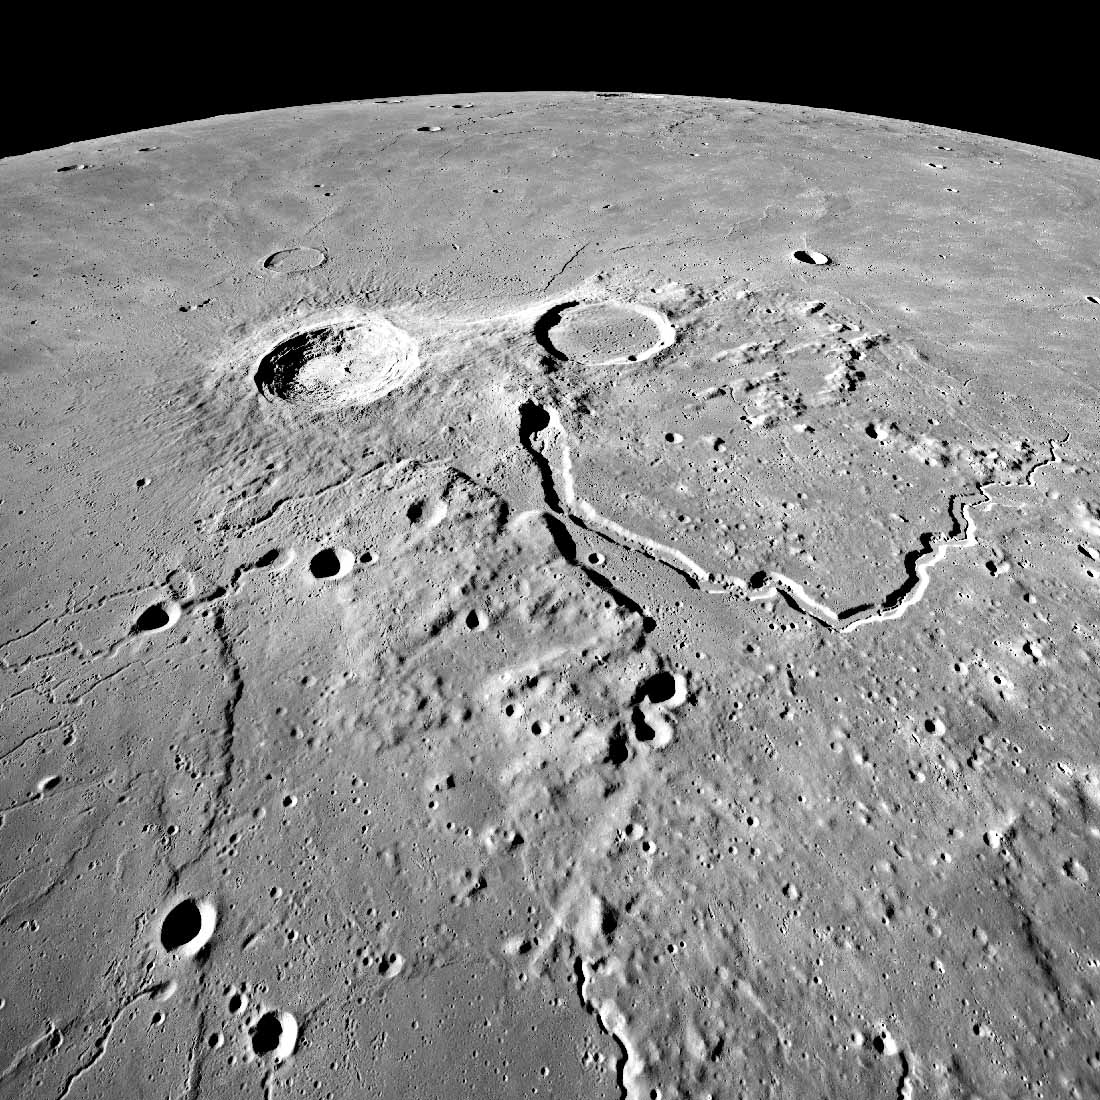 The team hopes to qualify MAPrad for space use so it can help uncover the resources available on the Moon (pictured) and Mars to support life. Credit: NASA.